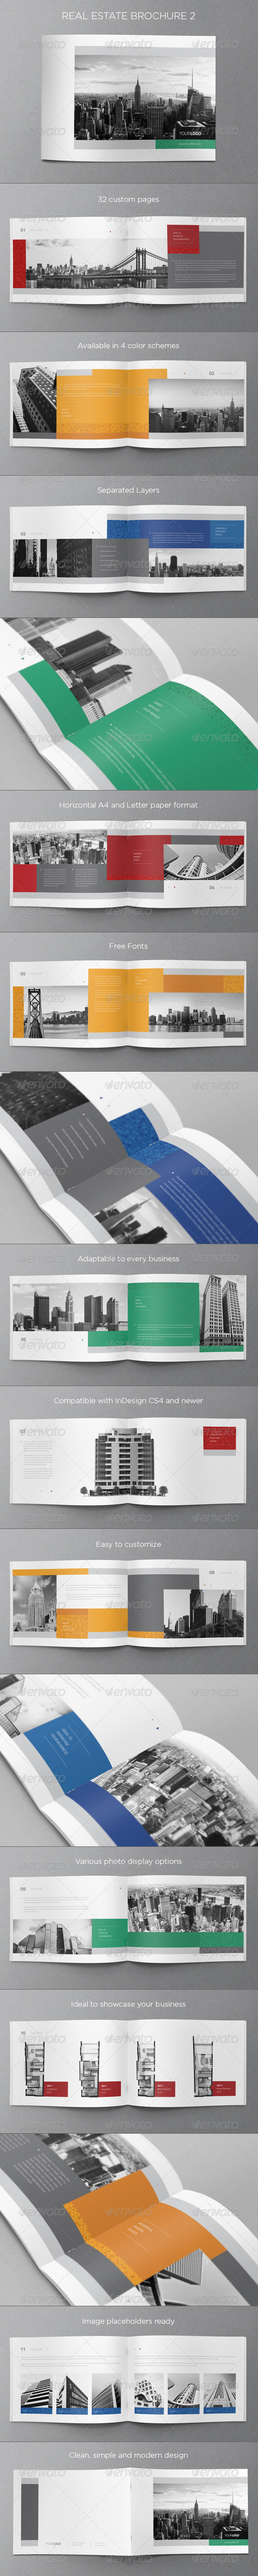 GraphicRiver Real Estate Brochure 2 5935898